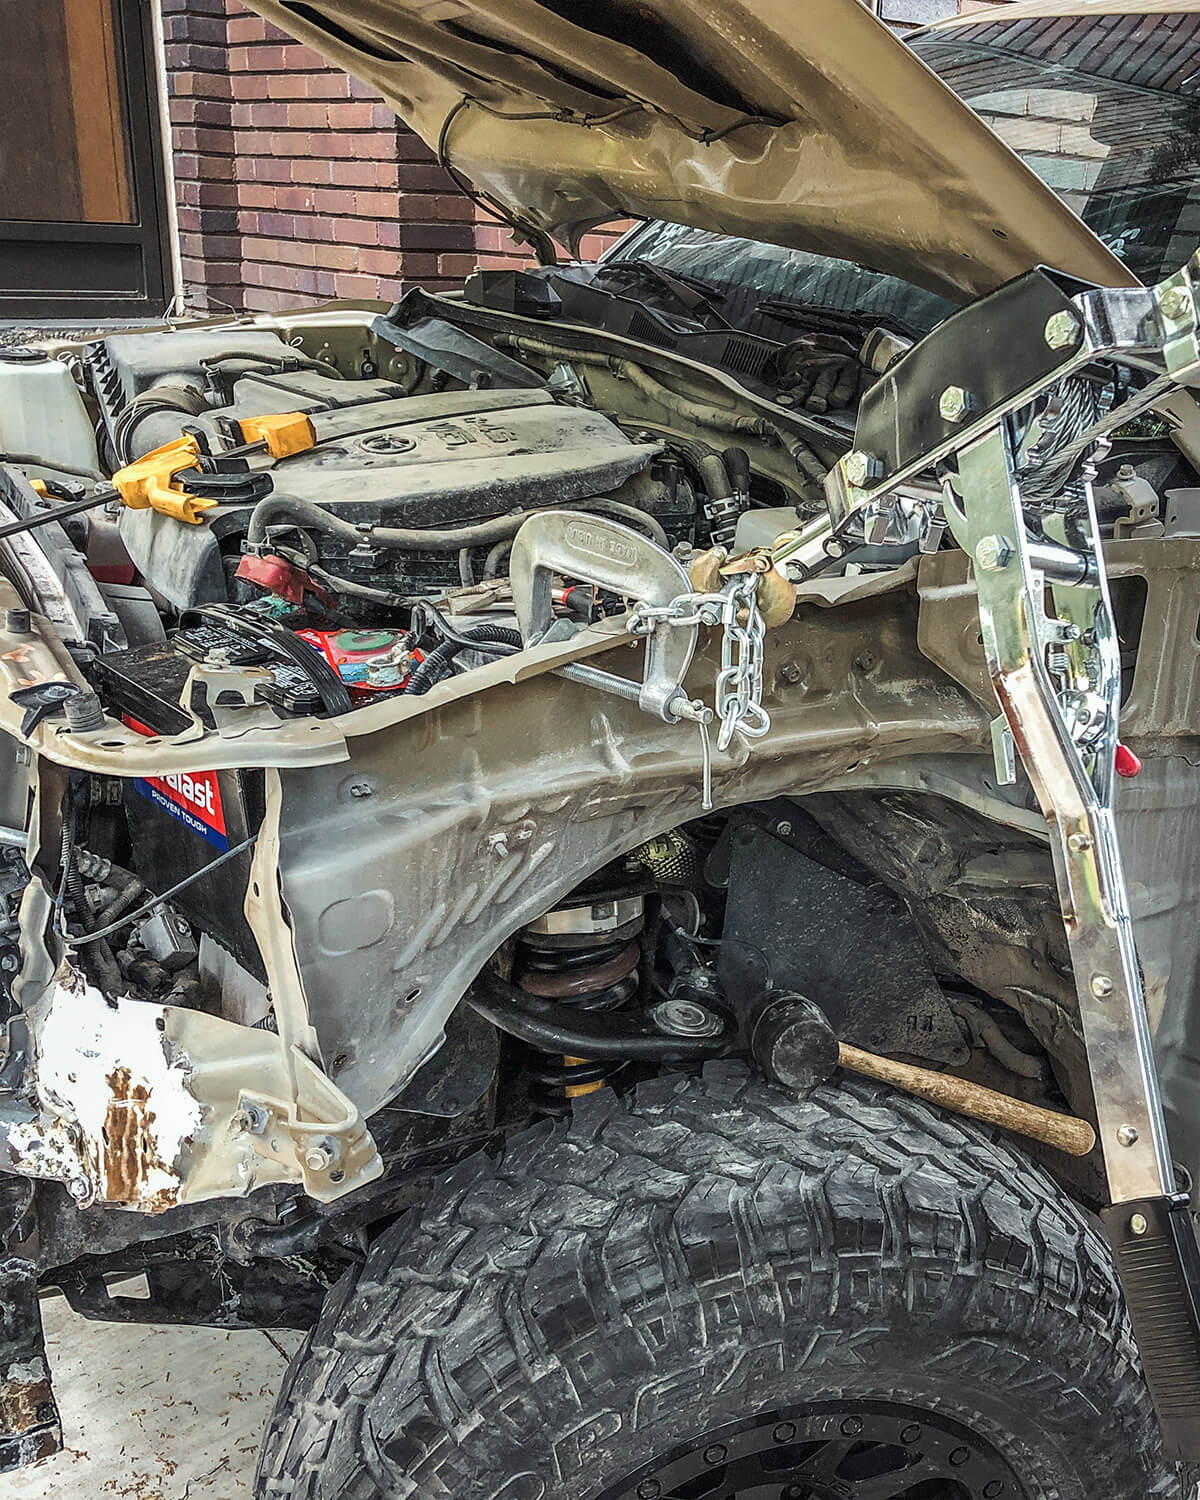 Totaled toyota tacoma truck with a body damage